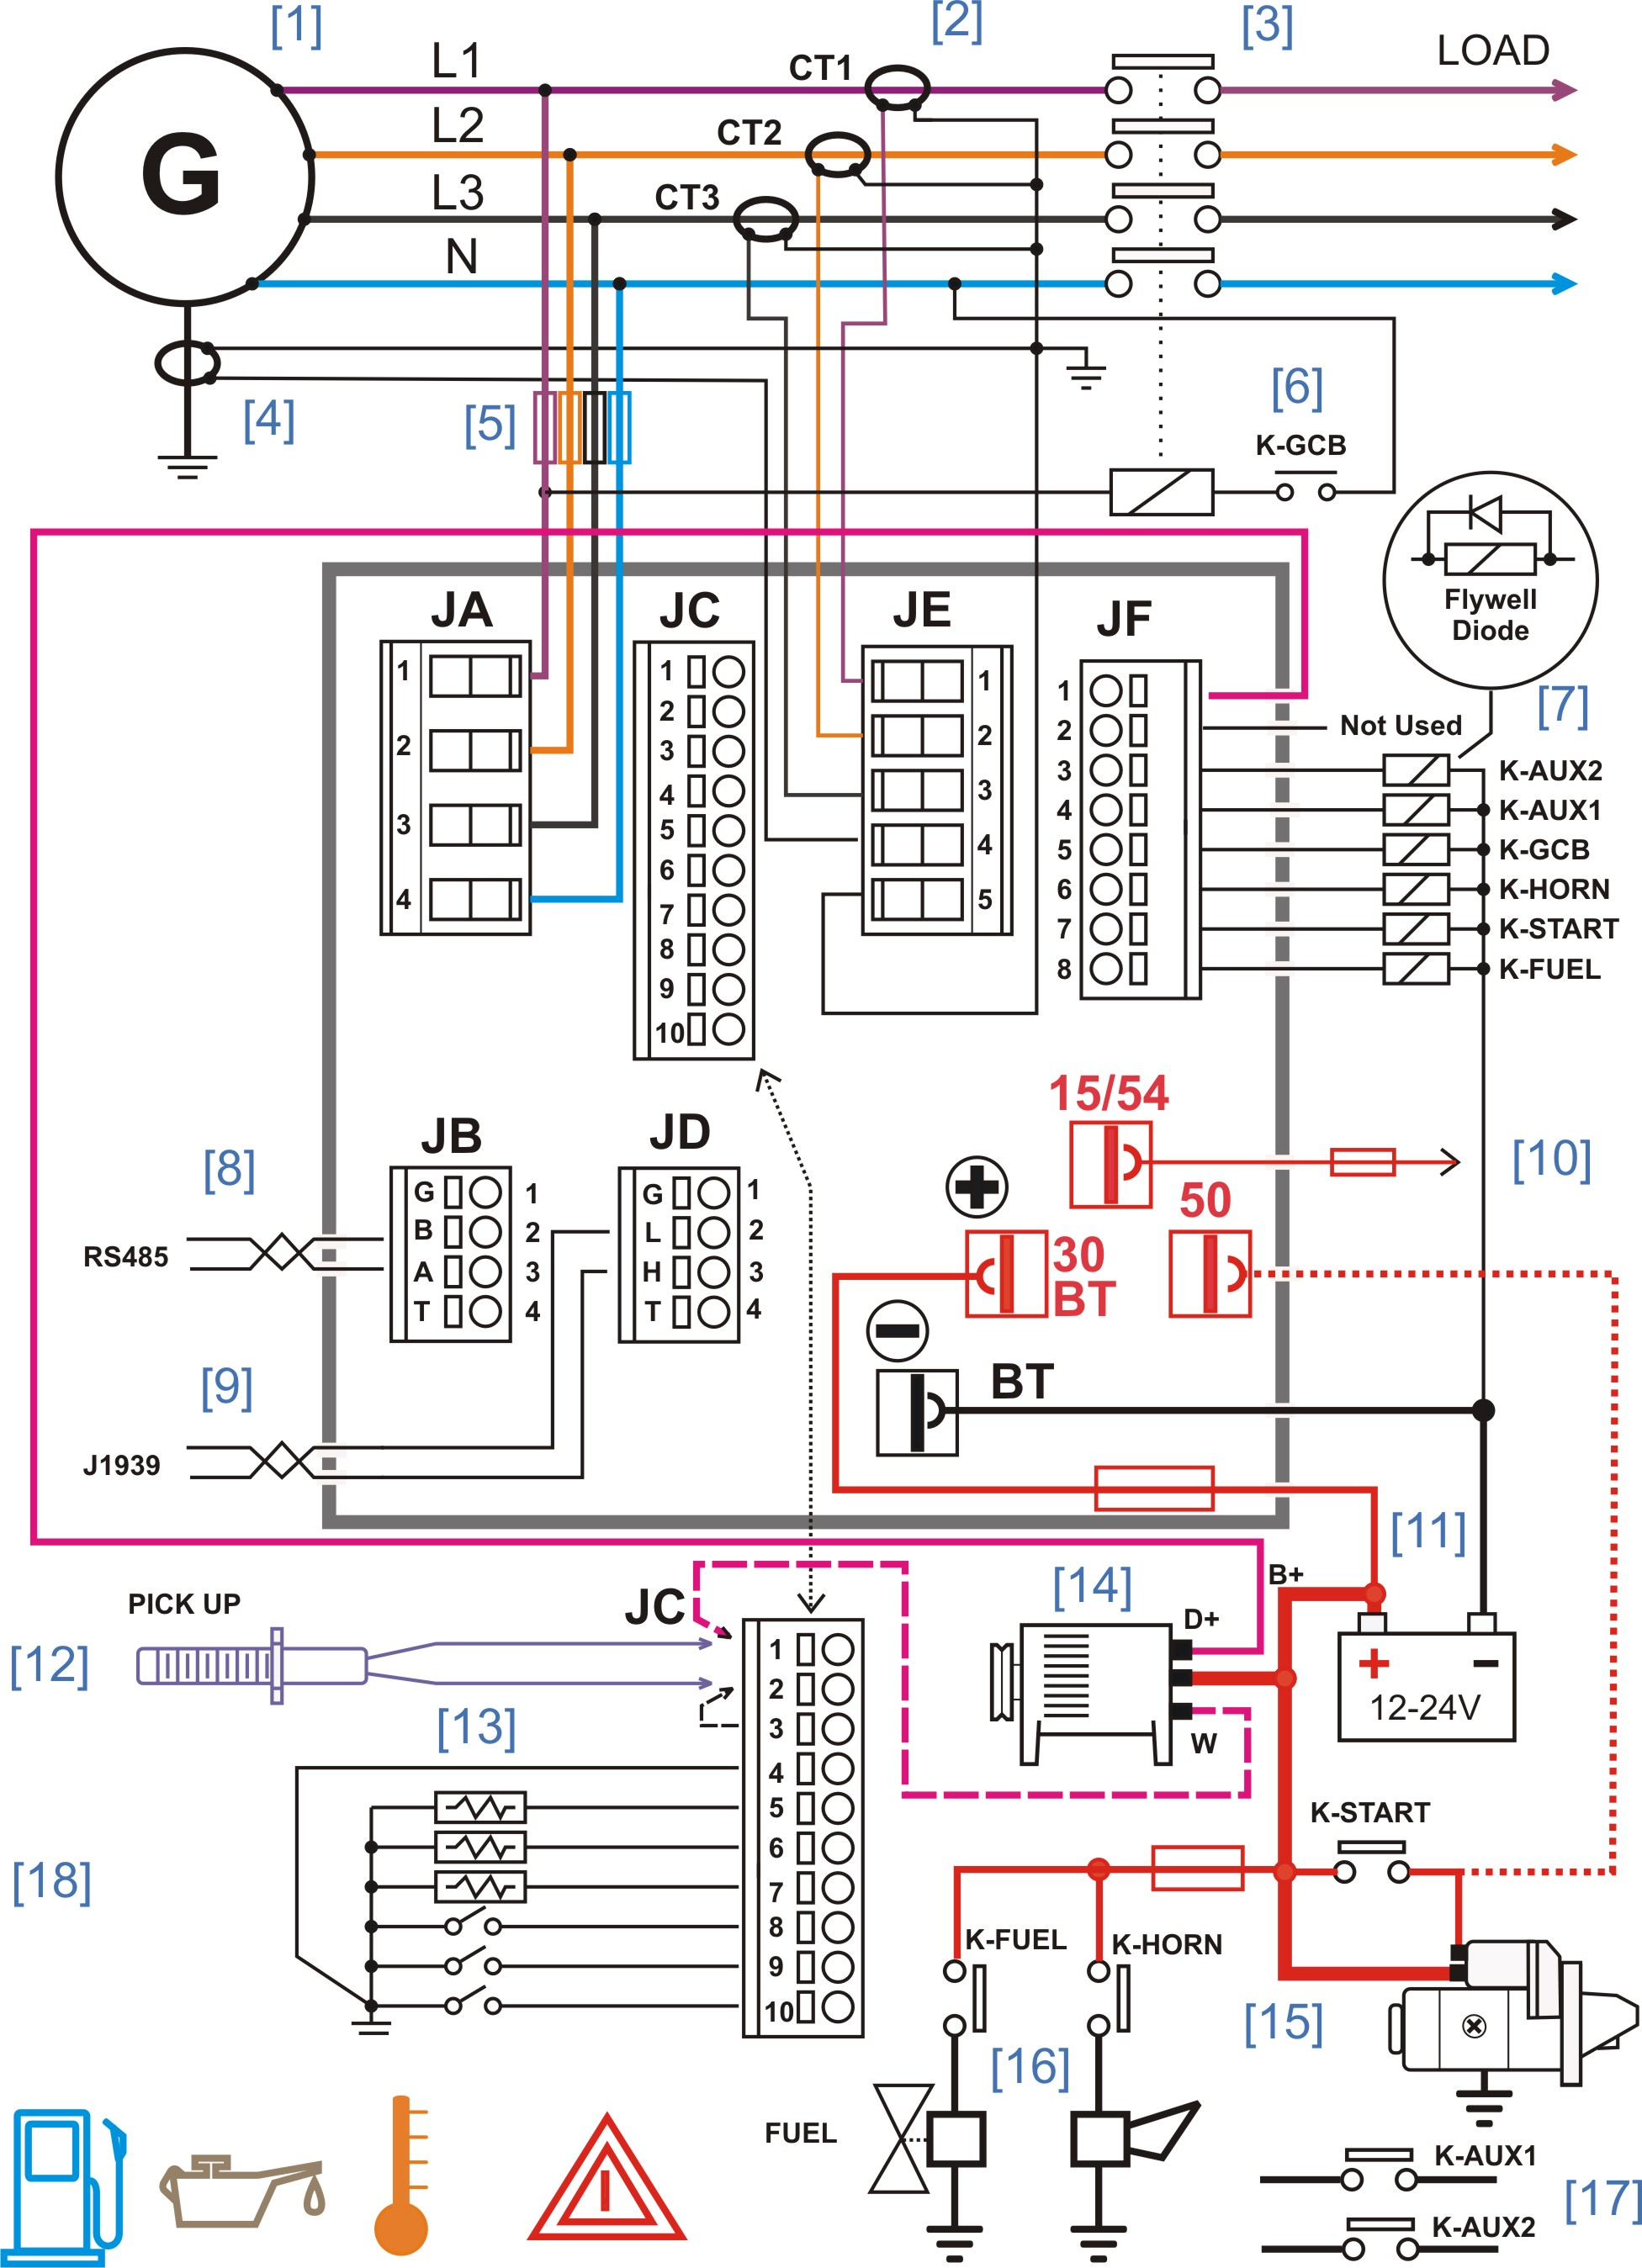 ats wiring diagrams wiring diagram rh 21 yoga neuwied de